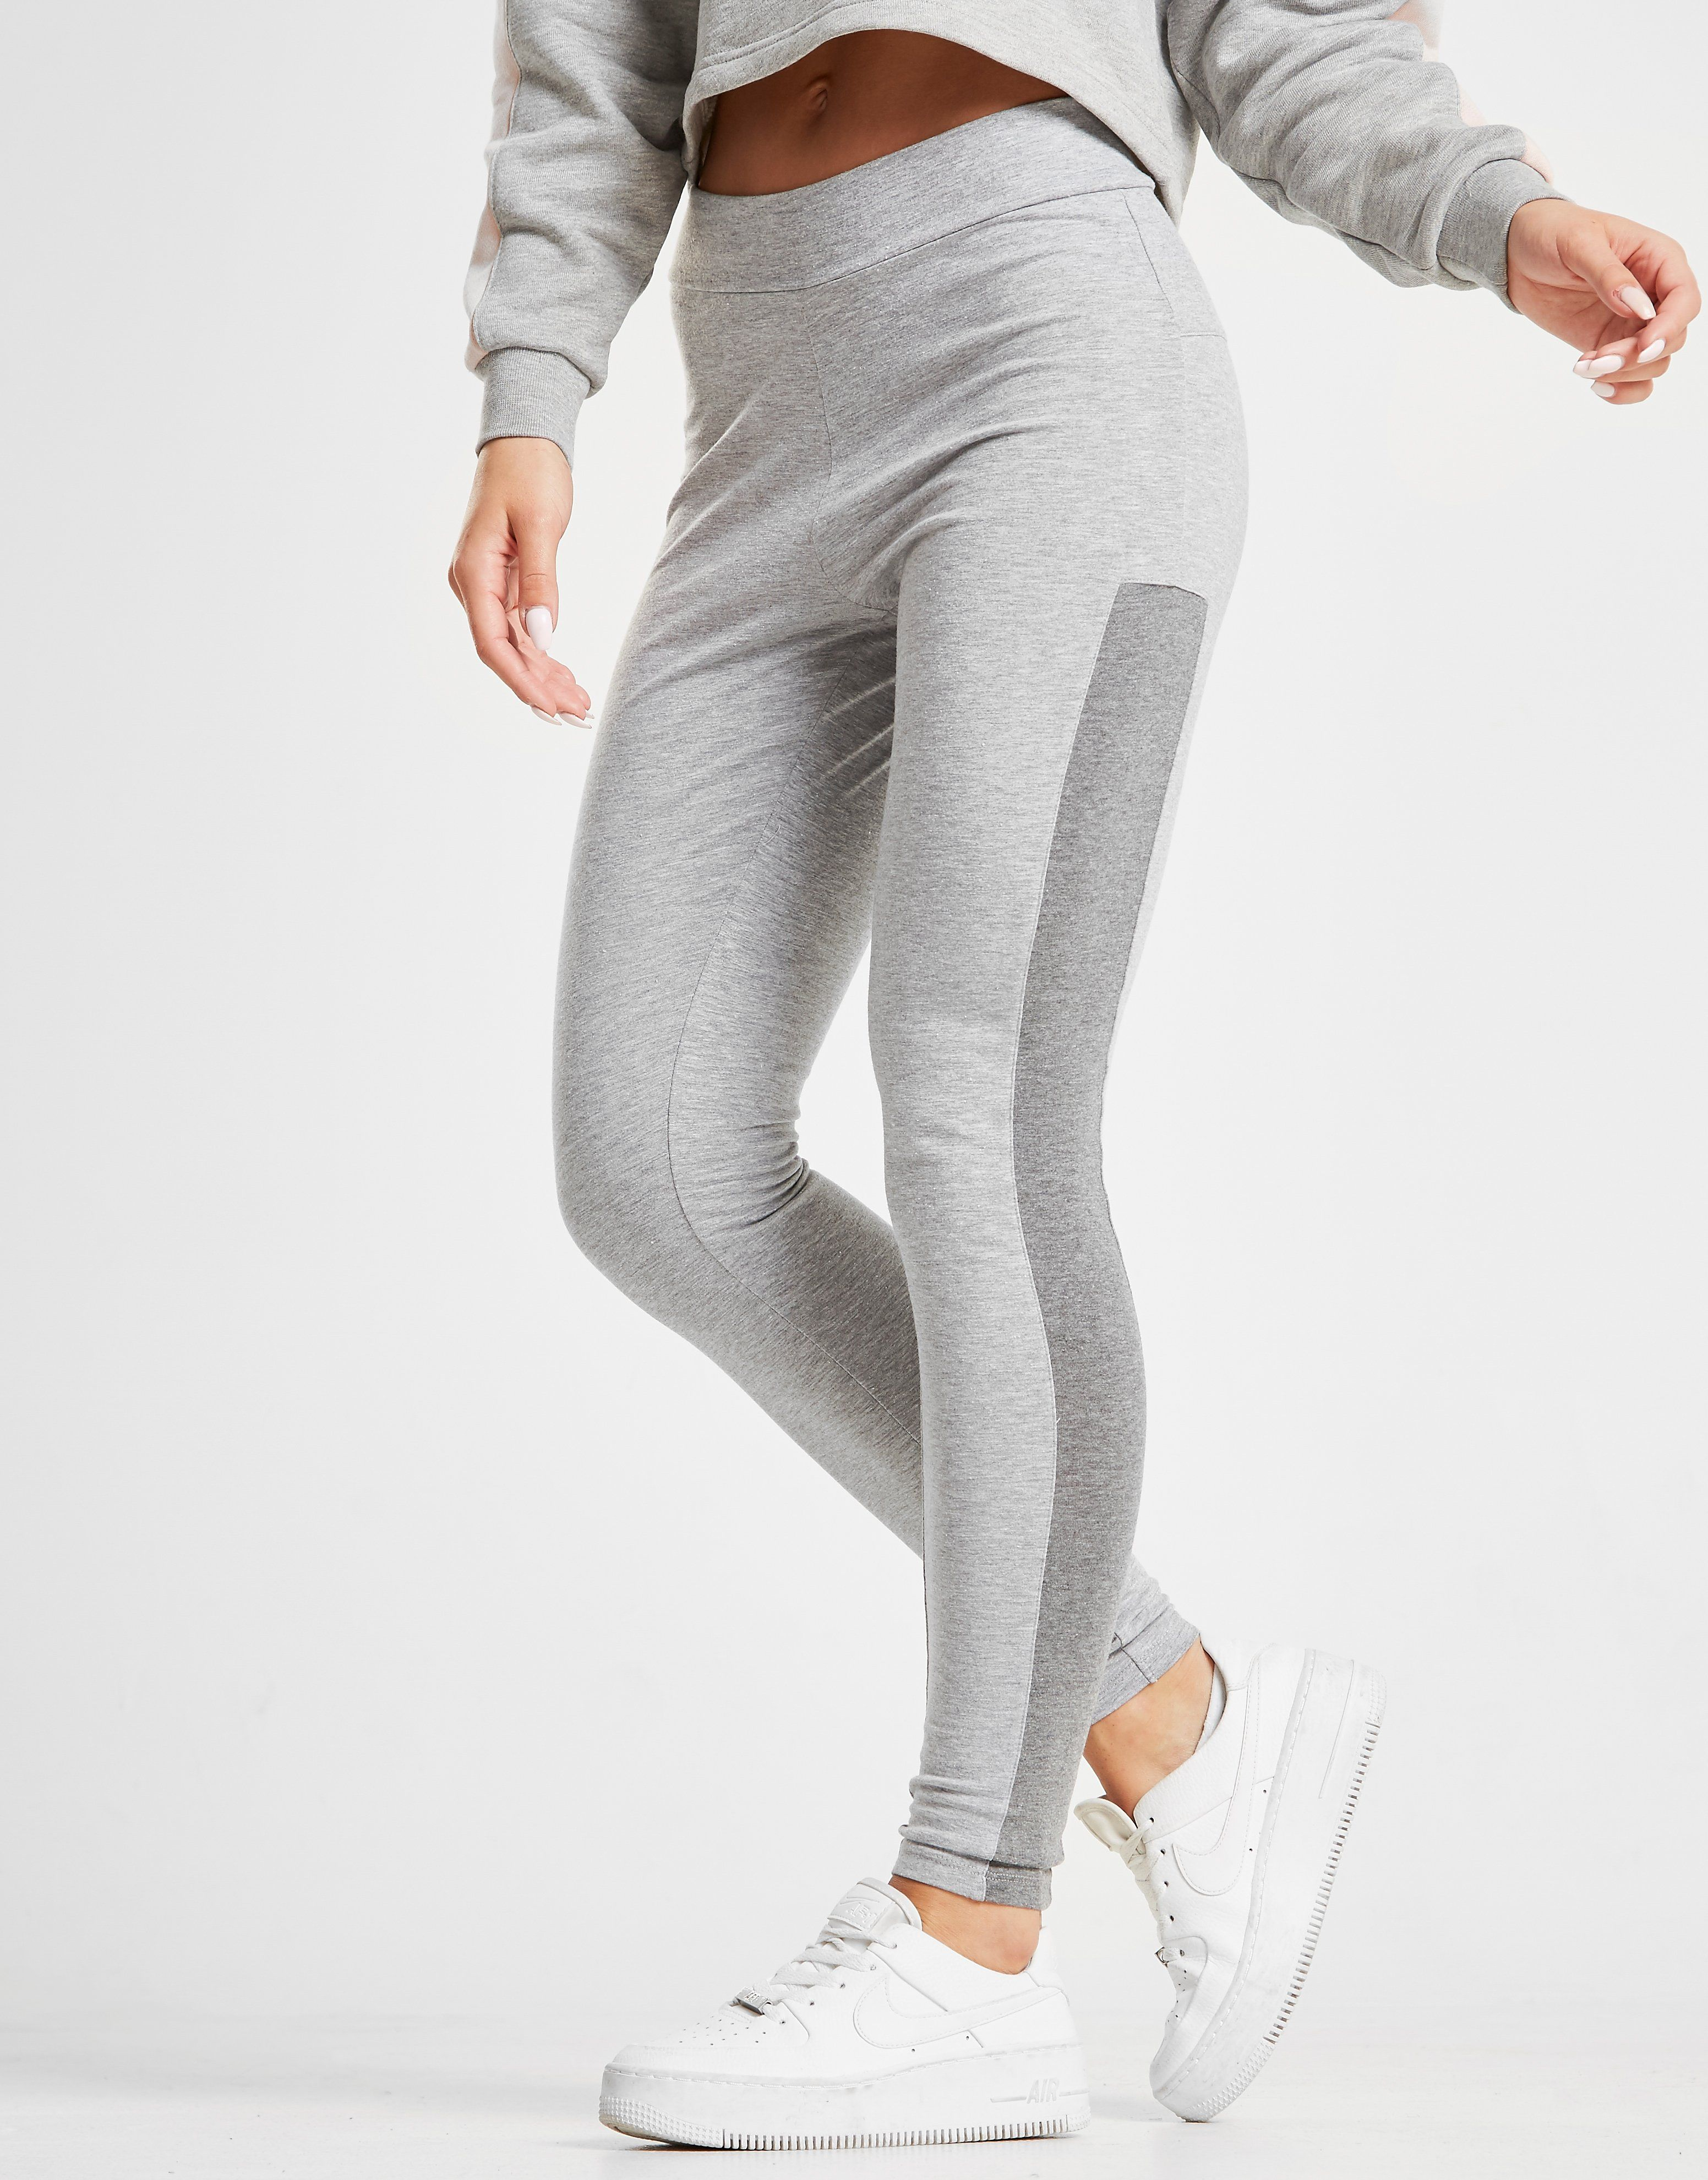 JAMESON CARTER Panel Leggings